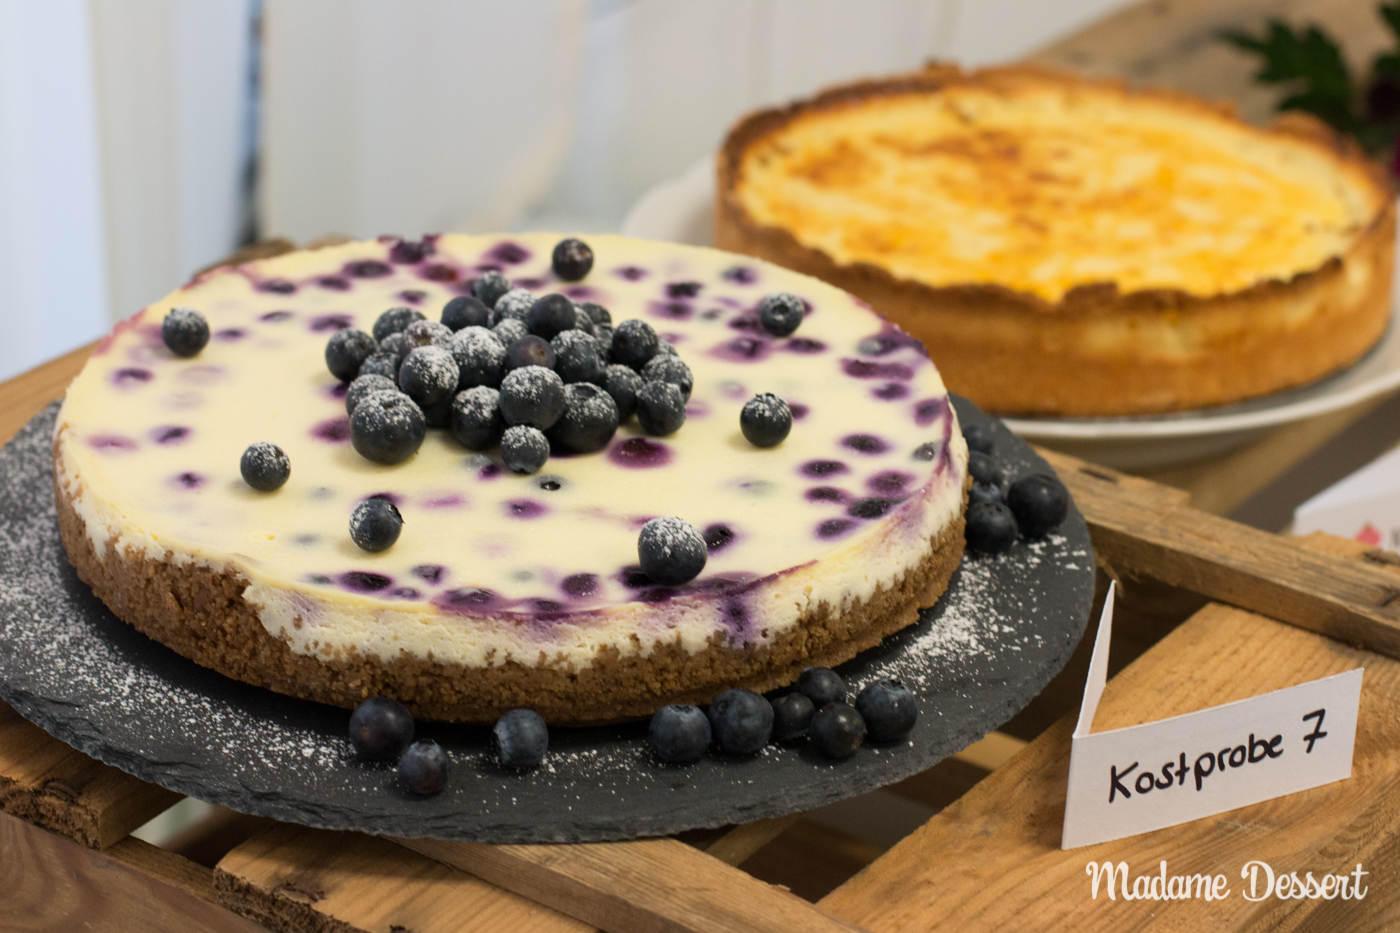 CheeseCakeOff – Käsekuchen & Cheesecake Variationen | Madame Dessert